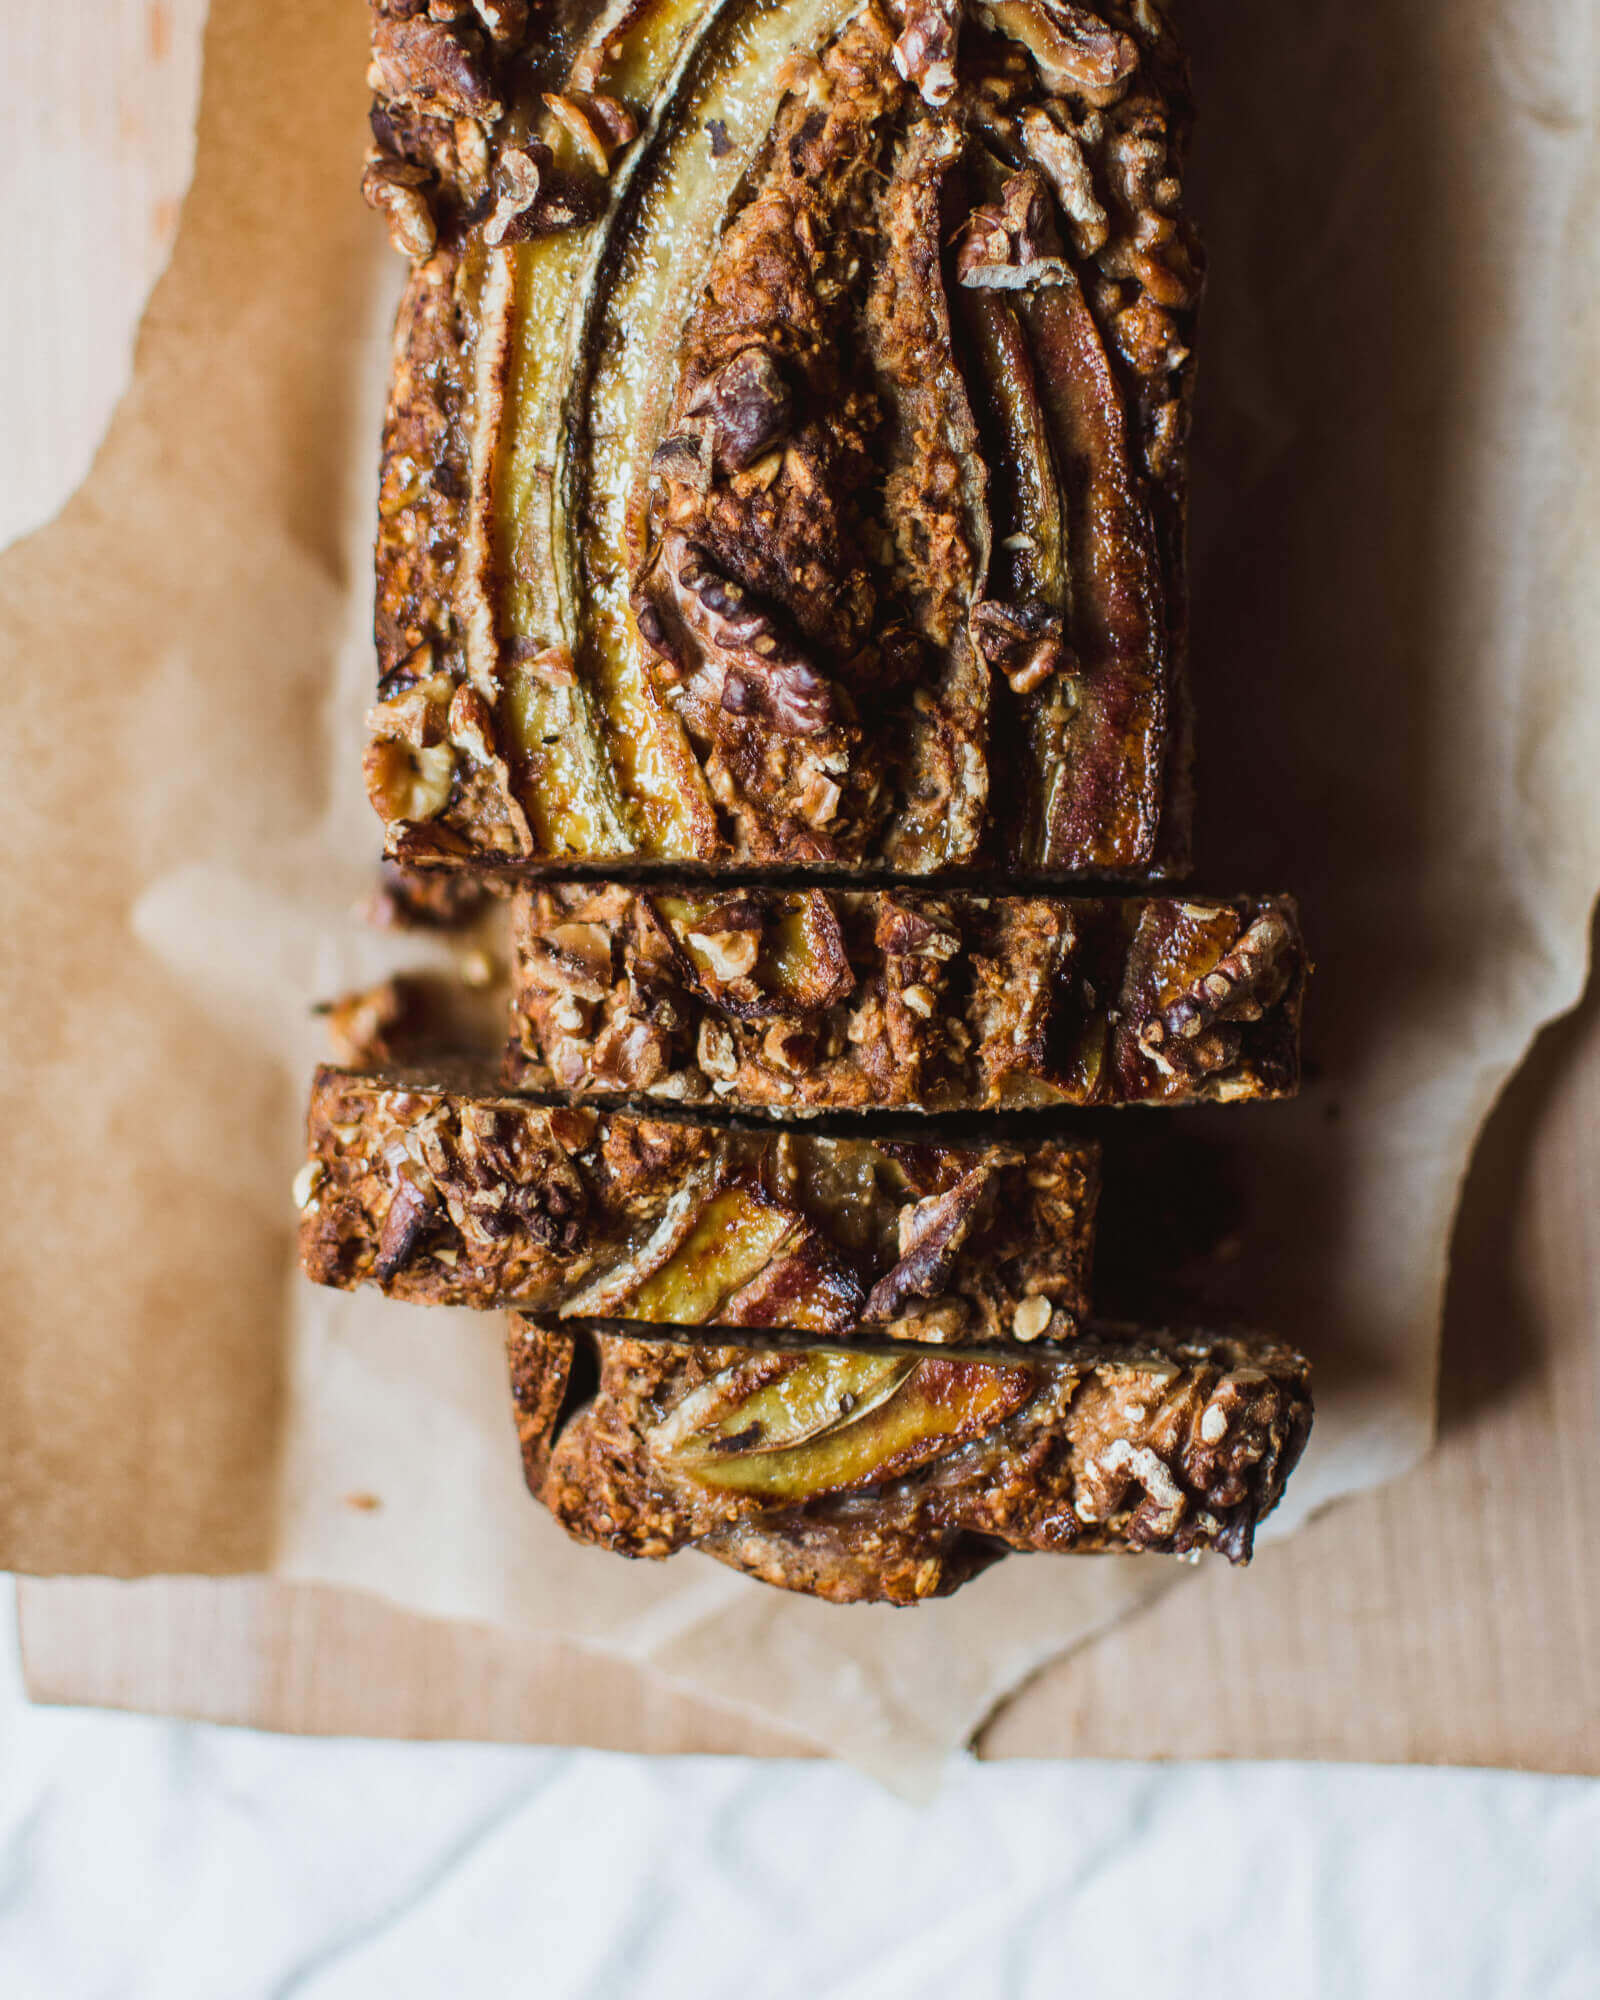 High Protein Banana & Blueberry Oat Bread